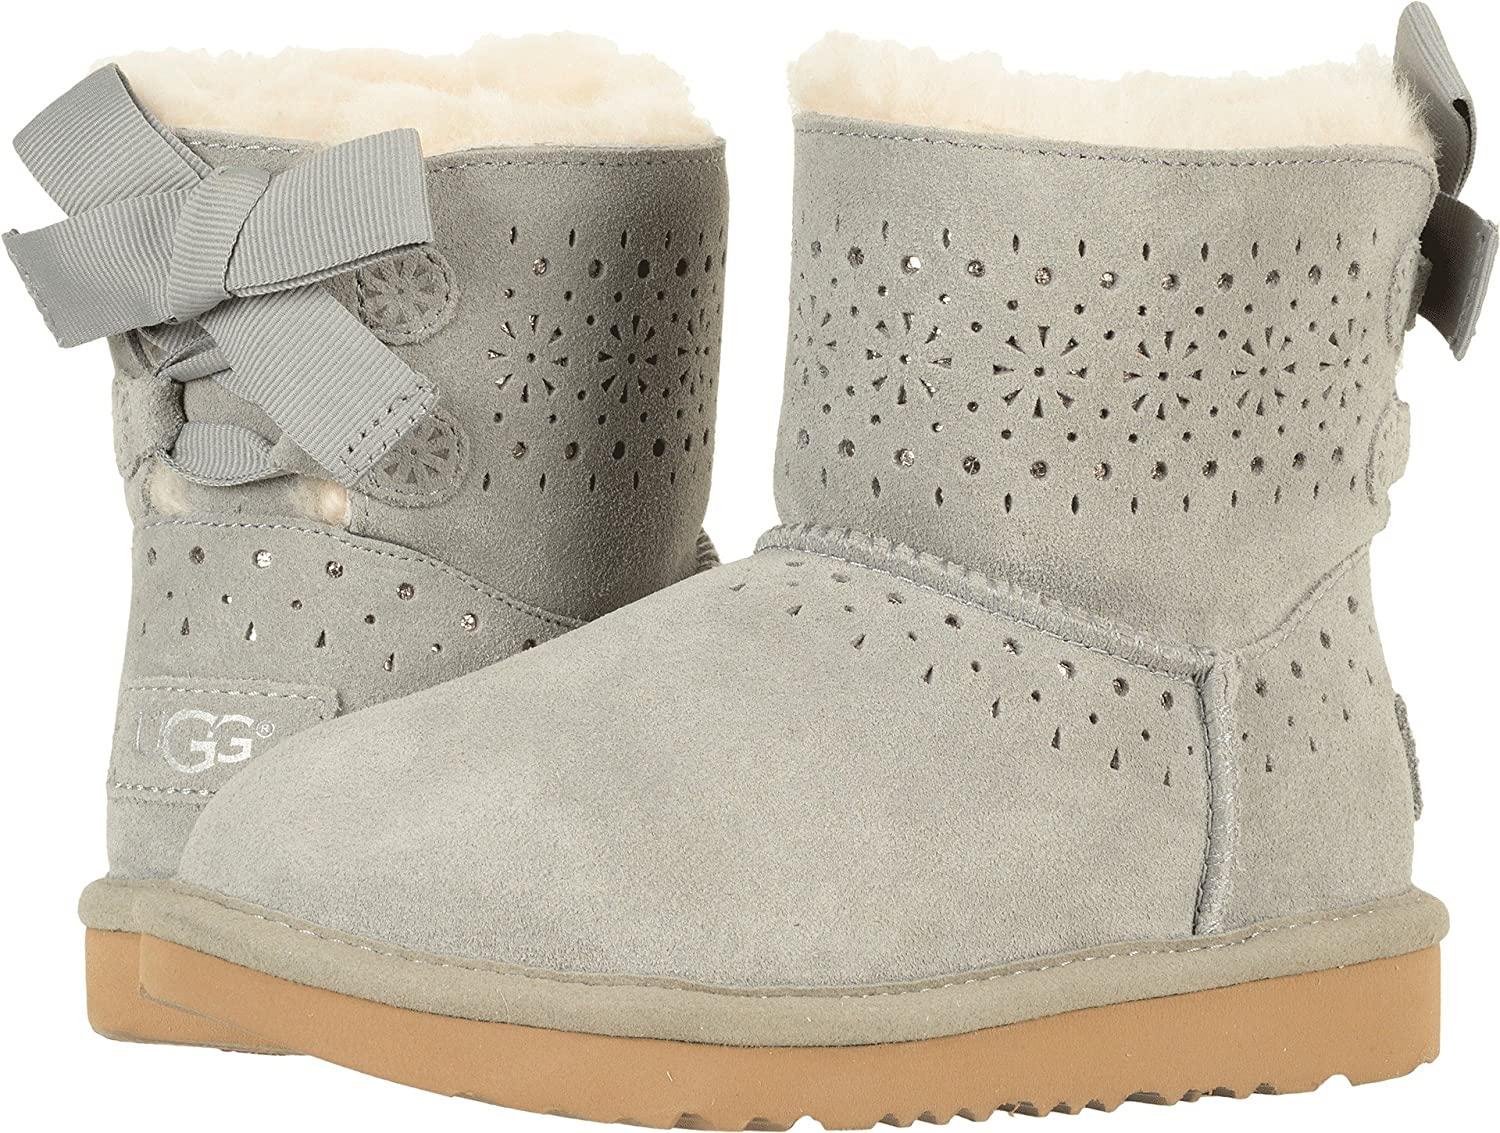 9b44076804 UGG Big Kids Dae Sunshine Perf Boot Seal Size 4 Big Kid M  Amazon.co.uk   Sports   Outdoors